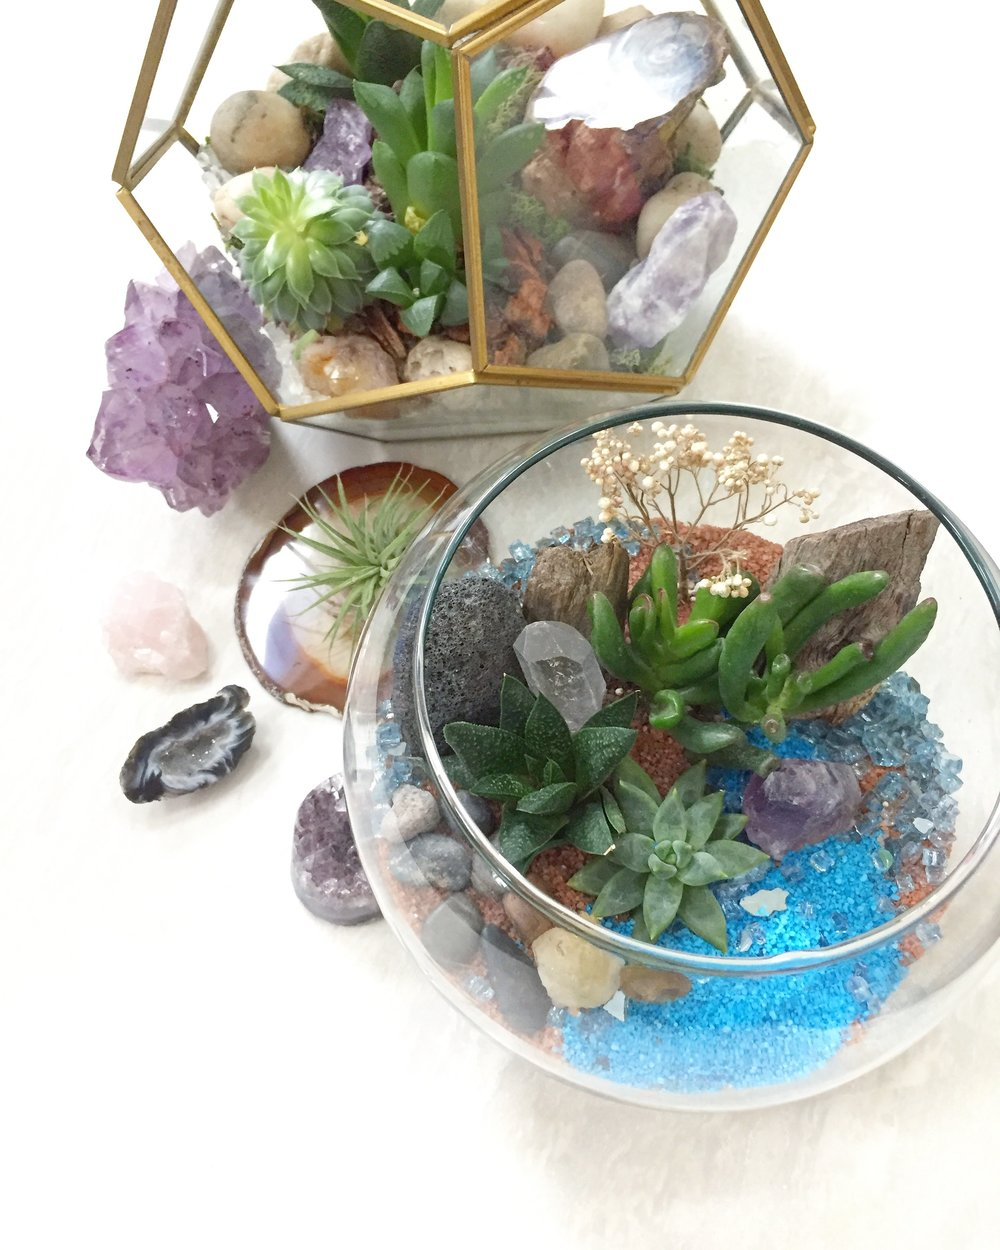 Succulent terrariums - LIGHT:Indoors, bright indirect lightWATER:Water sparingly at base of plants once every 2-3 weeks in hotter months, and every 3-4 weeks in cooler months. Only water if soil is dry.MAINTENANCE:Remove any fallen, soggy or dried leavesRemove any plants that might be failing (replace with a succulent clipping if desired)If plant starts to look like its stretching out move to area with more light.